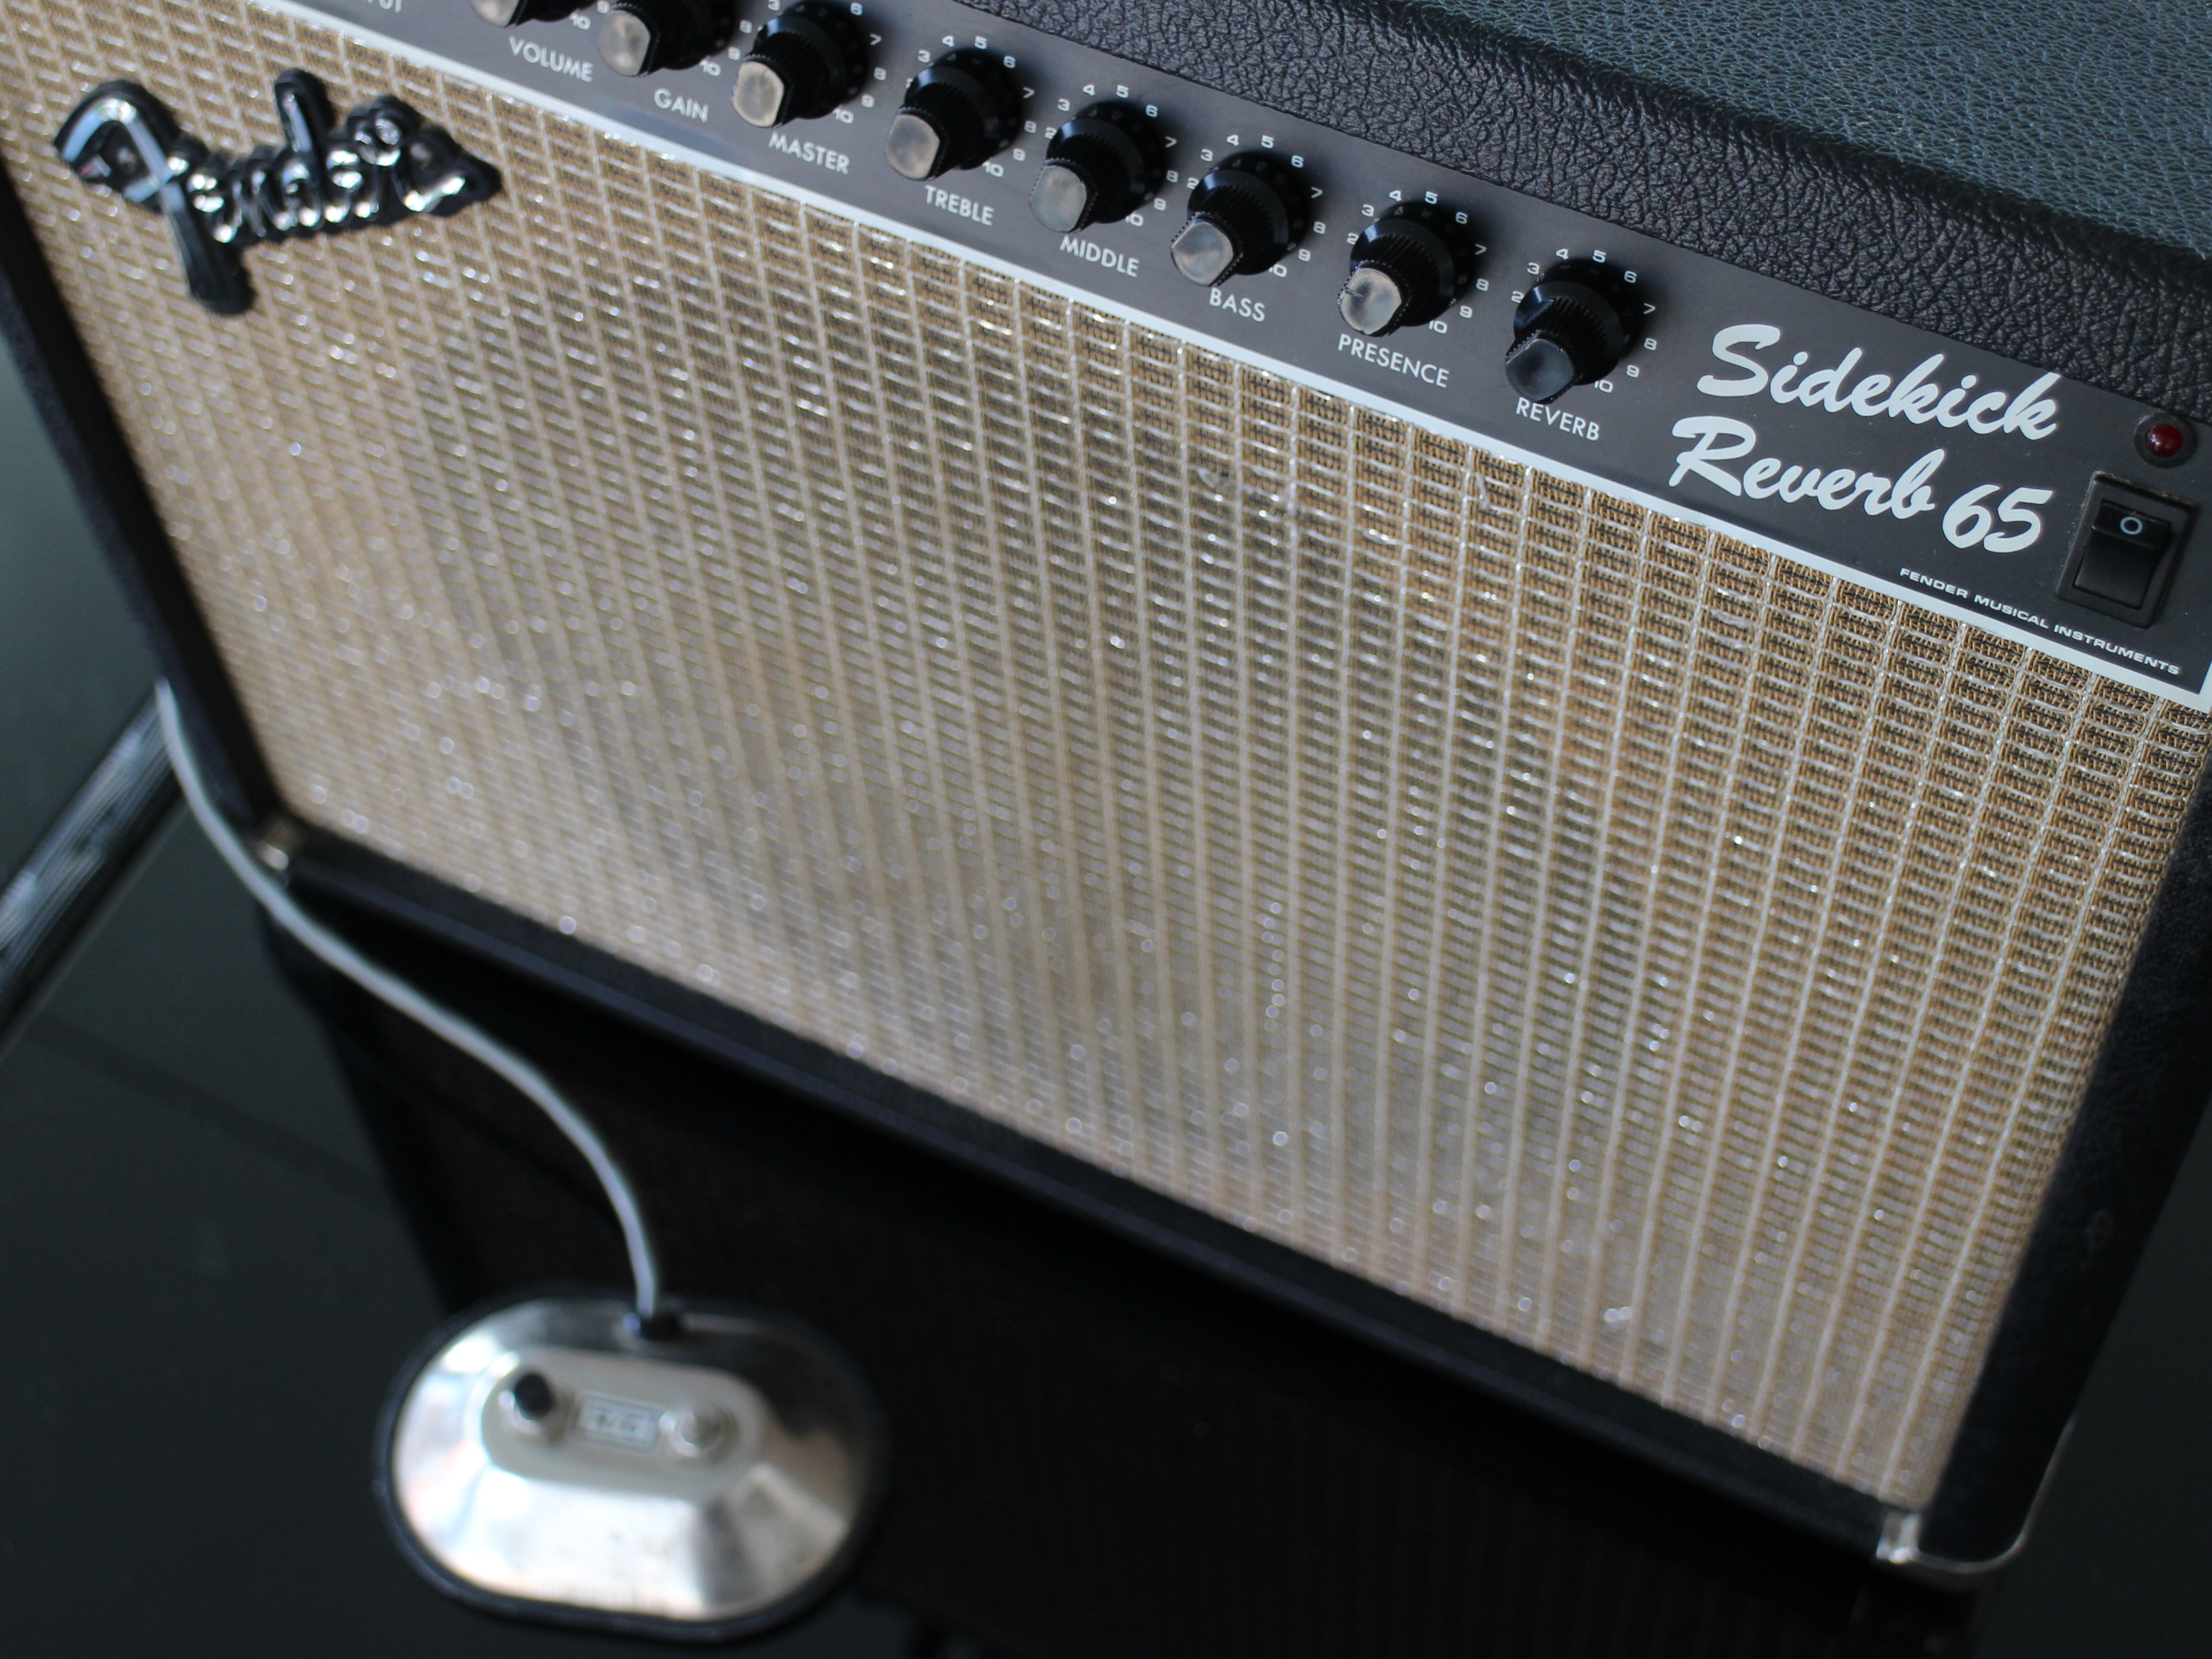 fender sidekick reverb 25 manual